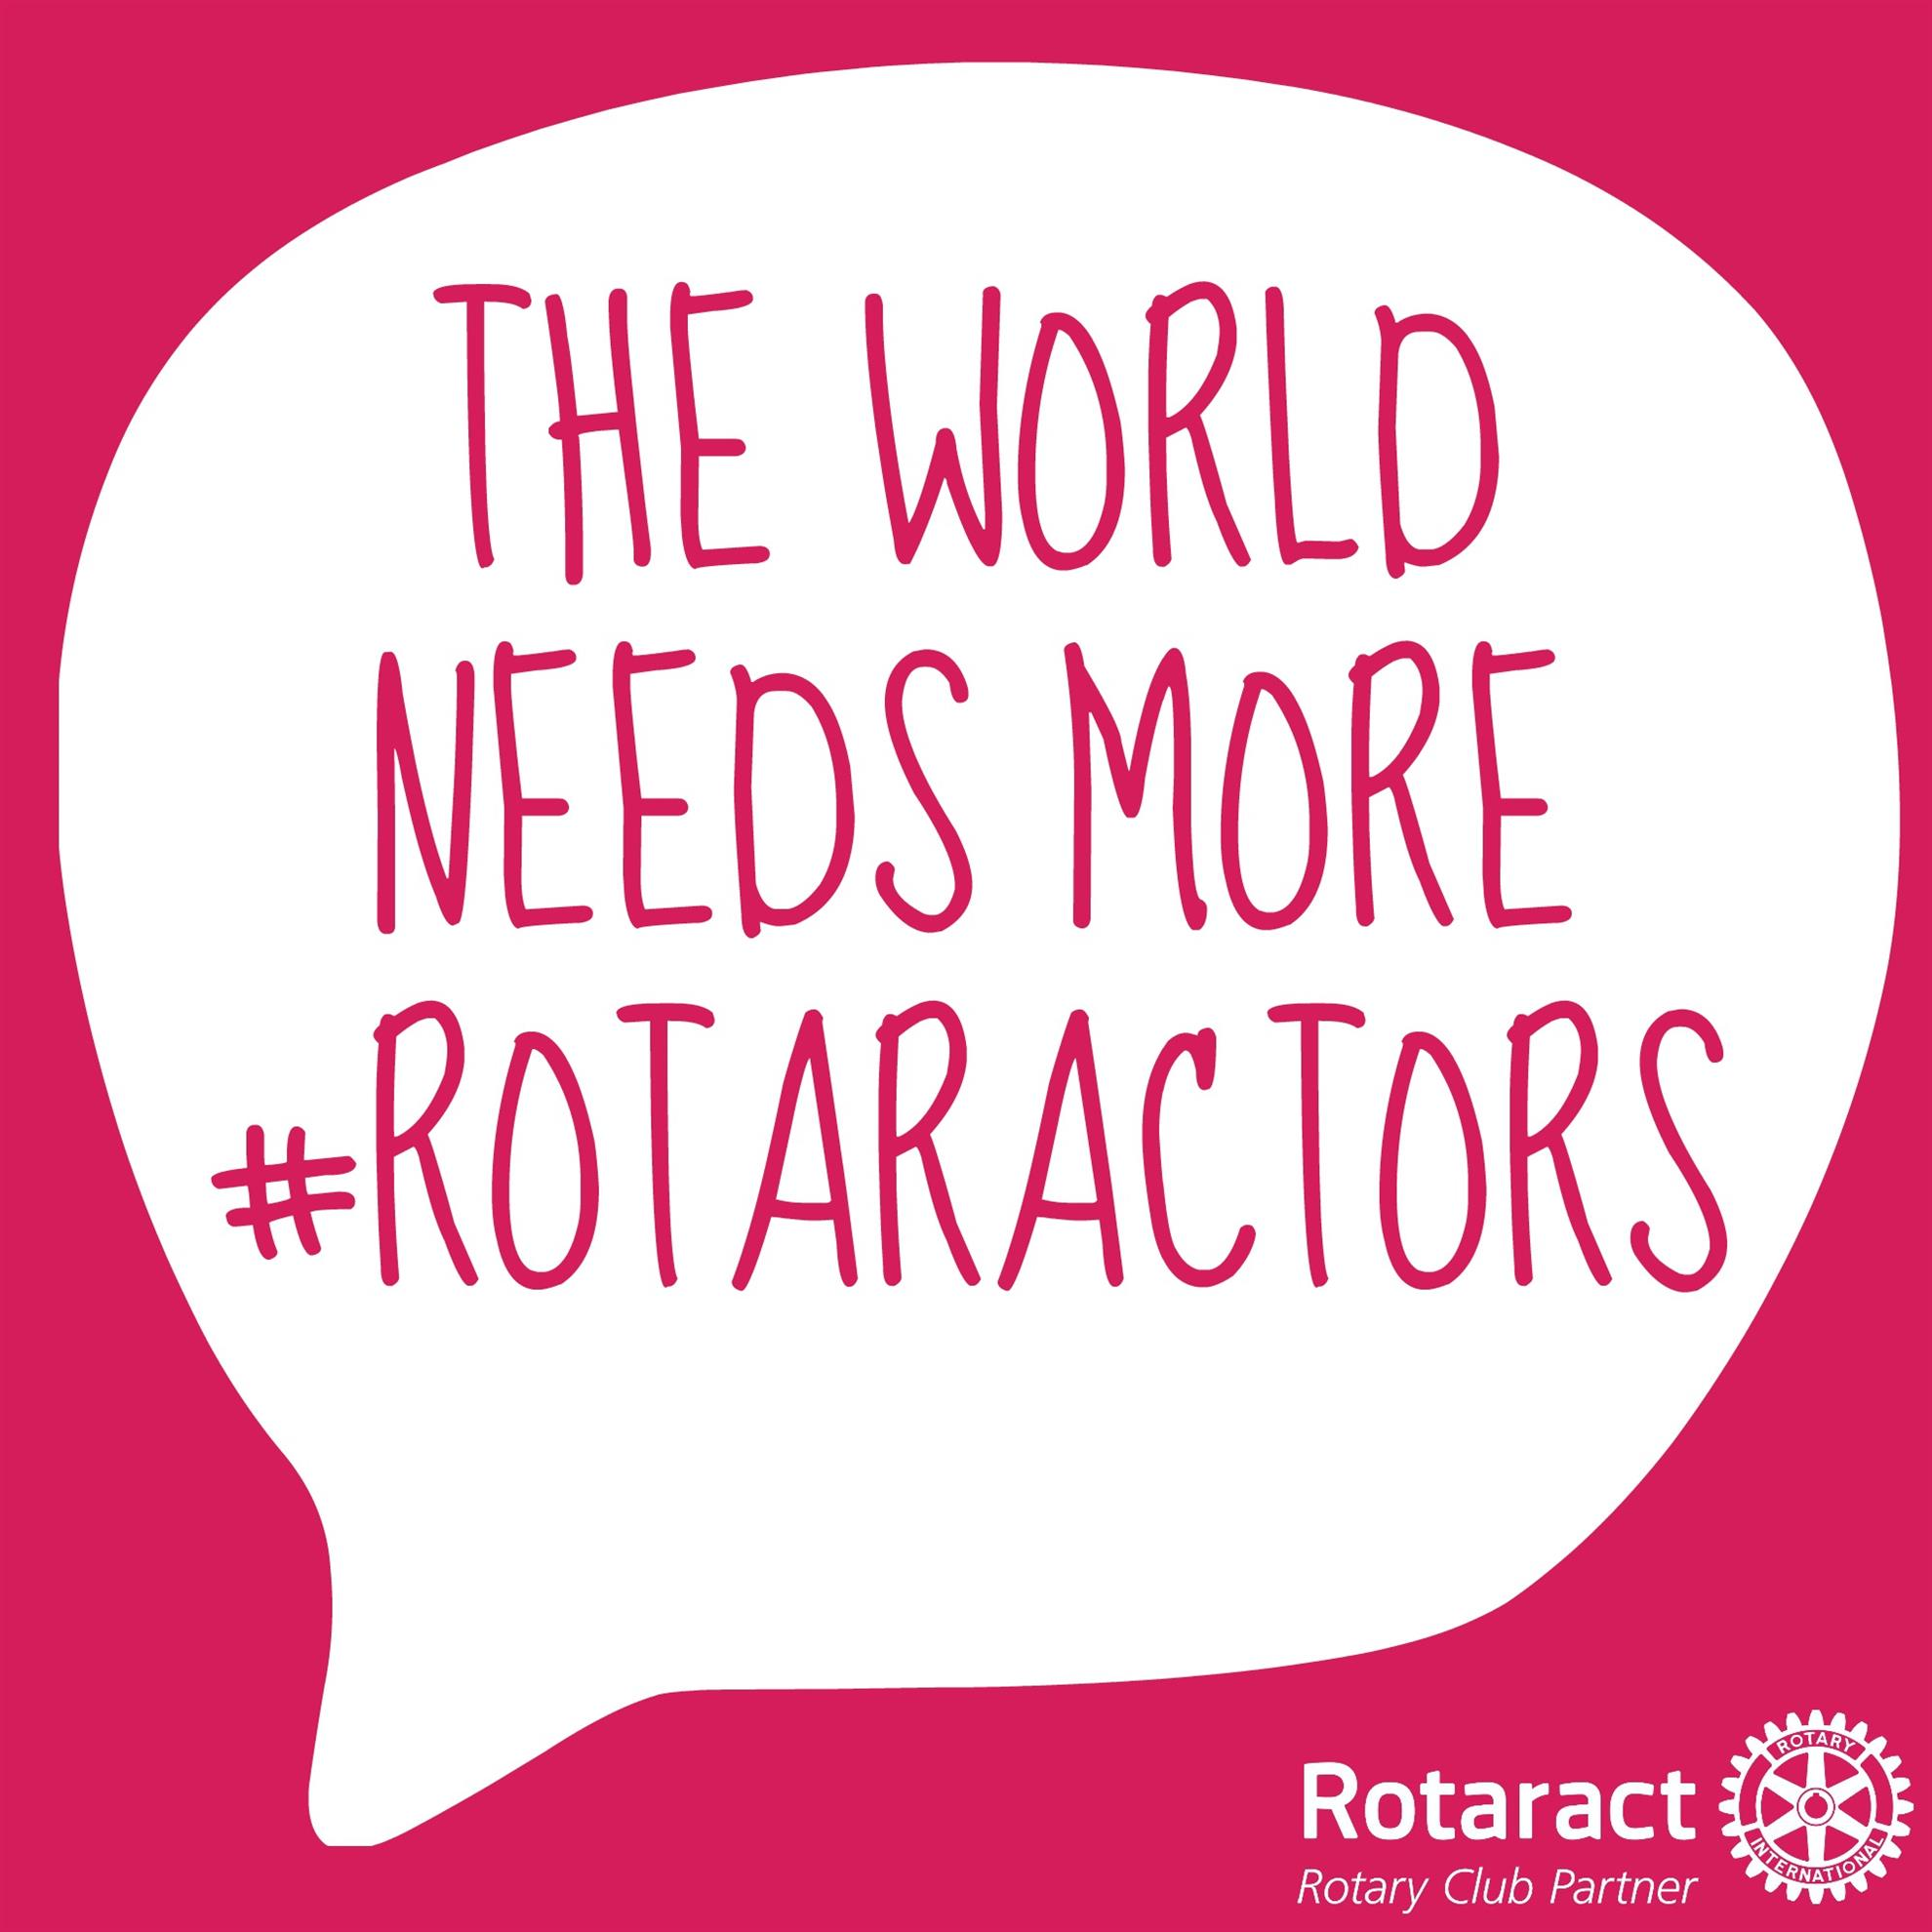 the world needs more rotaractors image